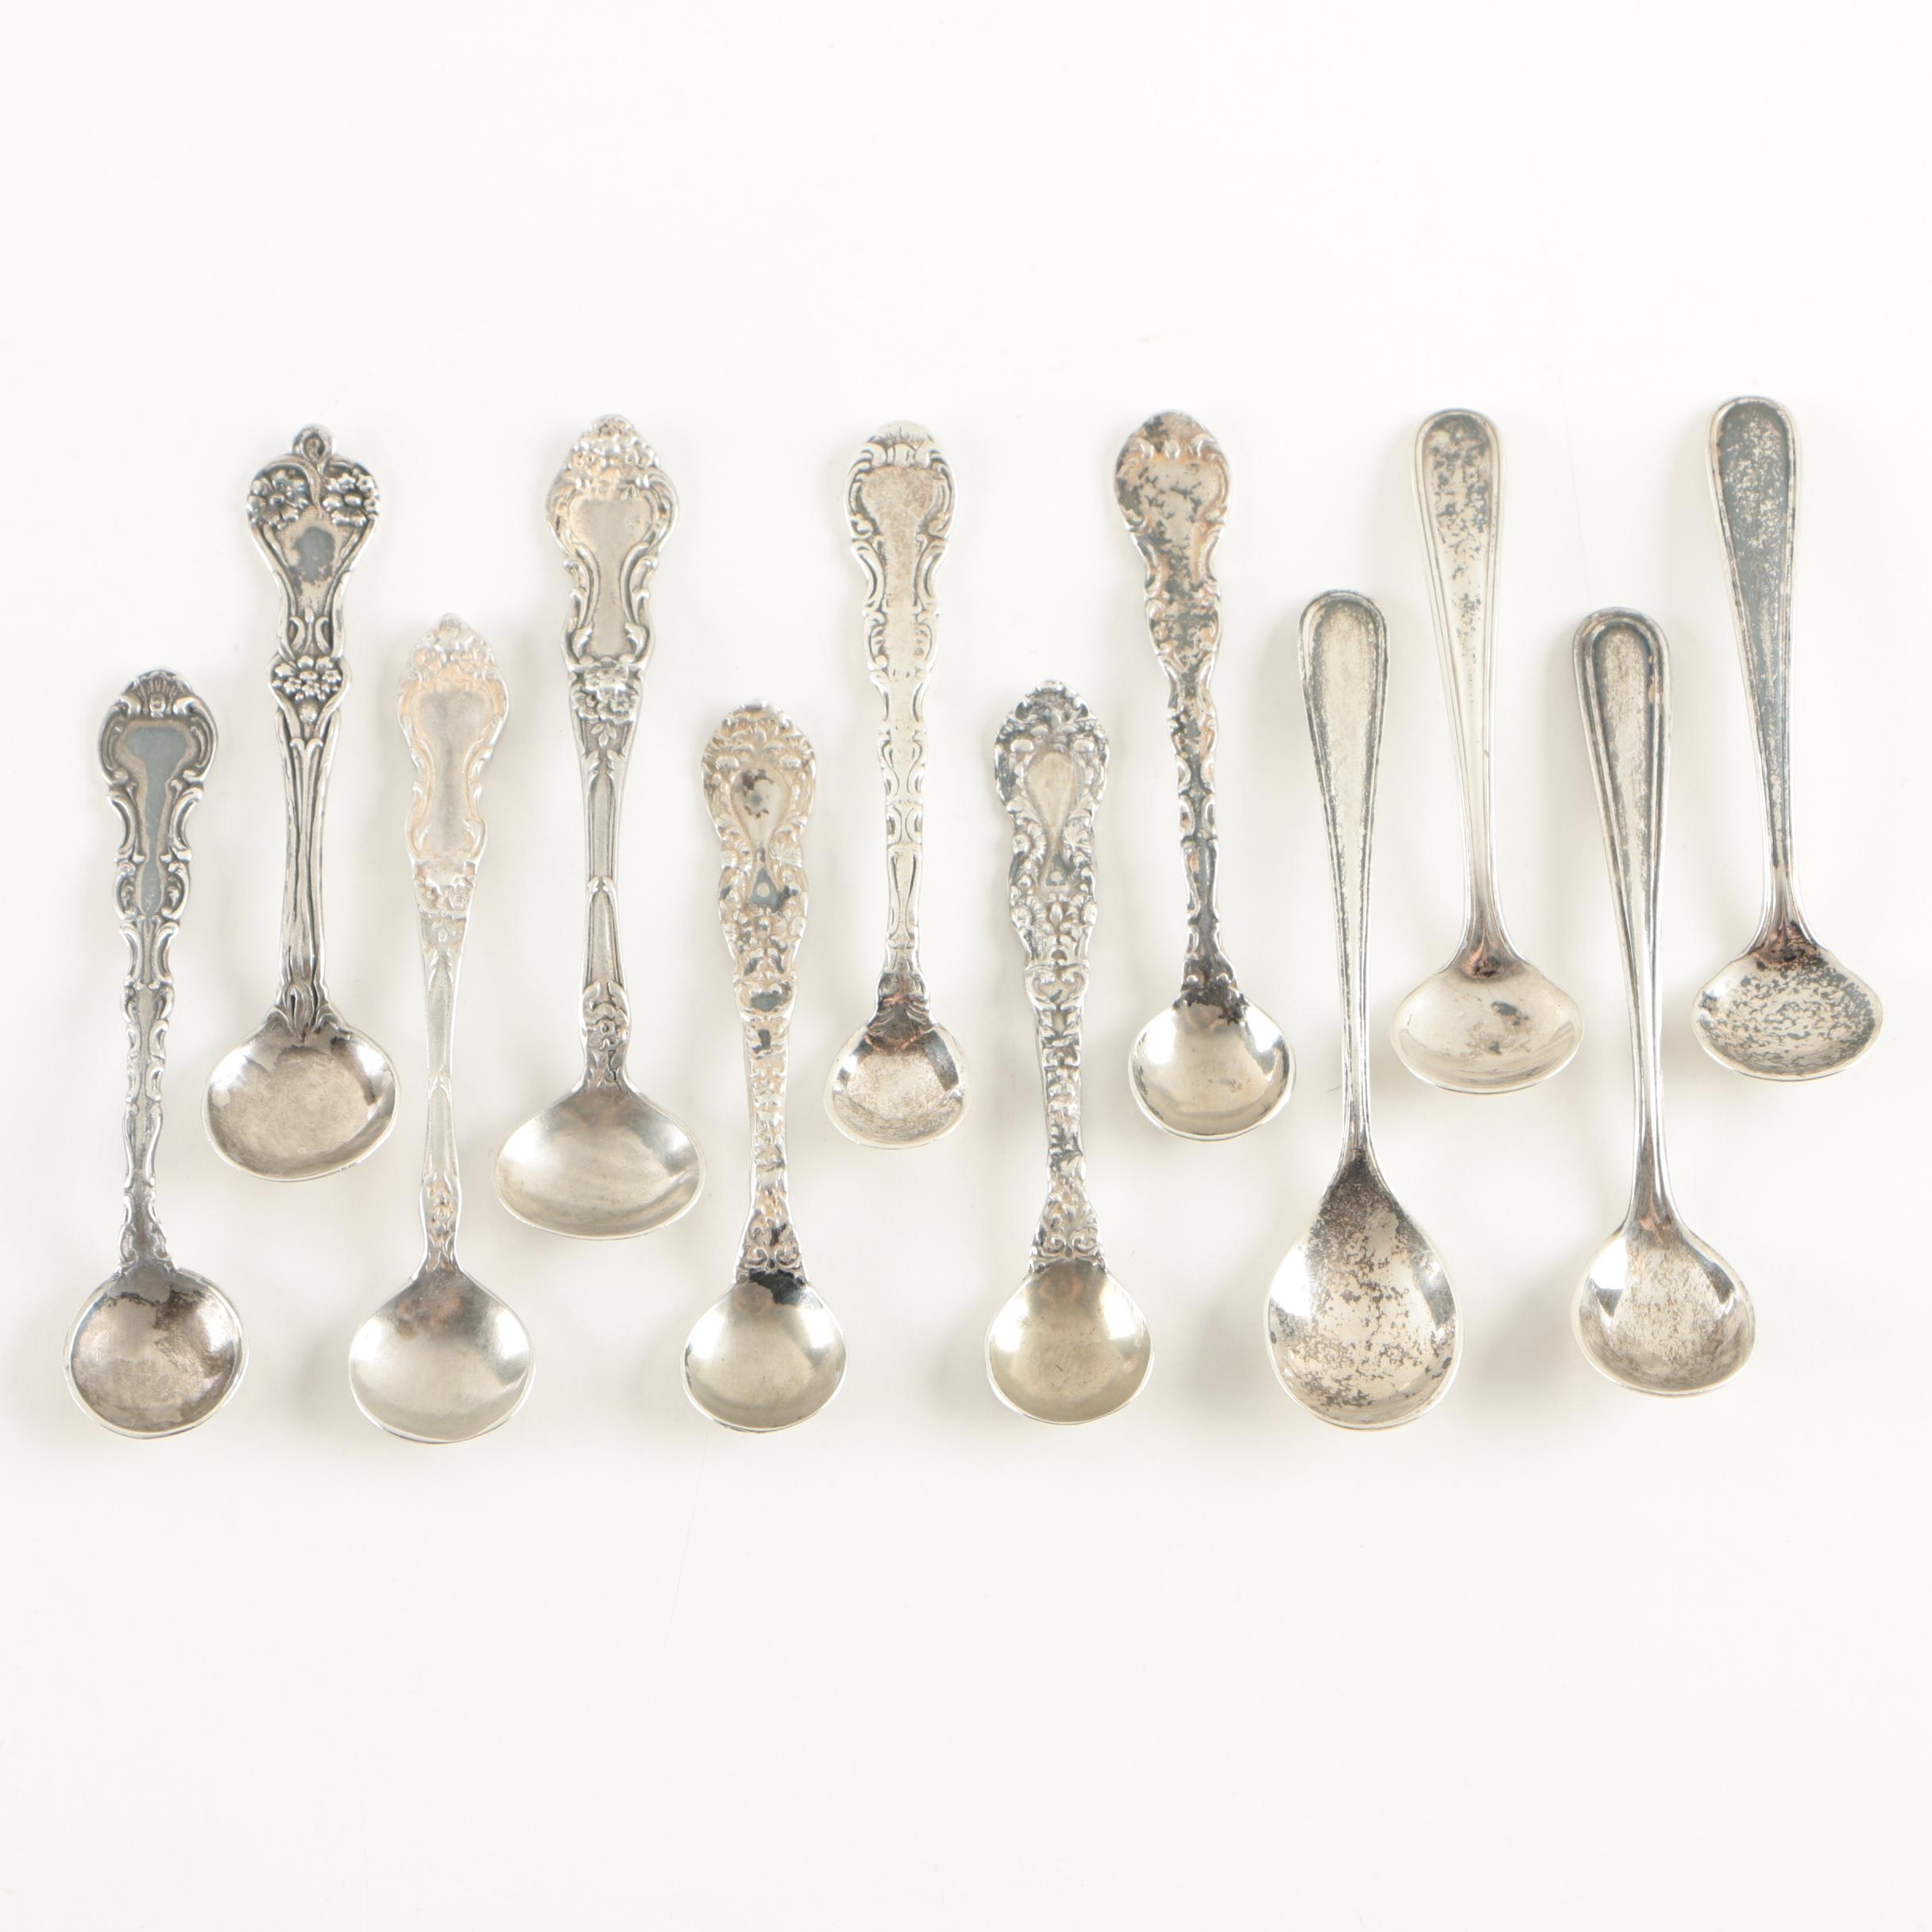 Sterling Silver Salt Spoons including Webster